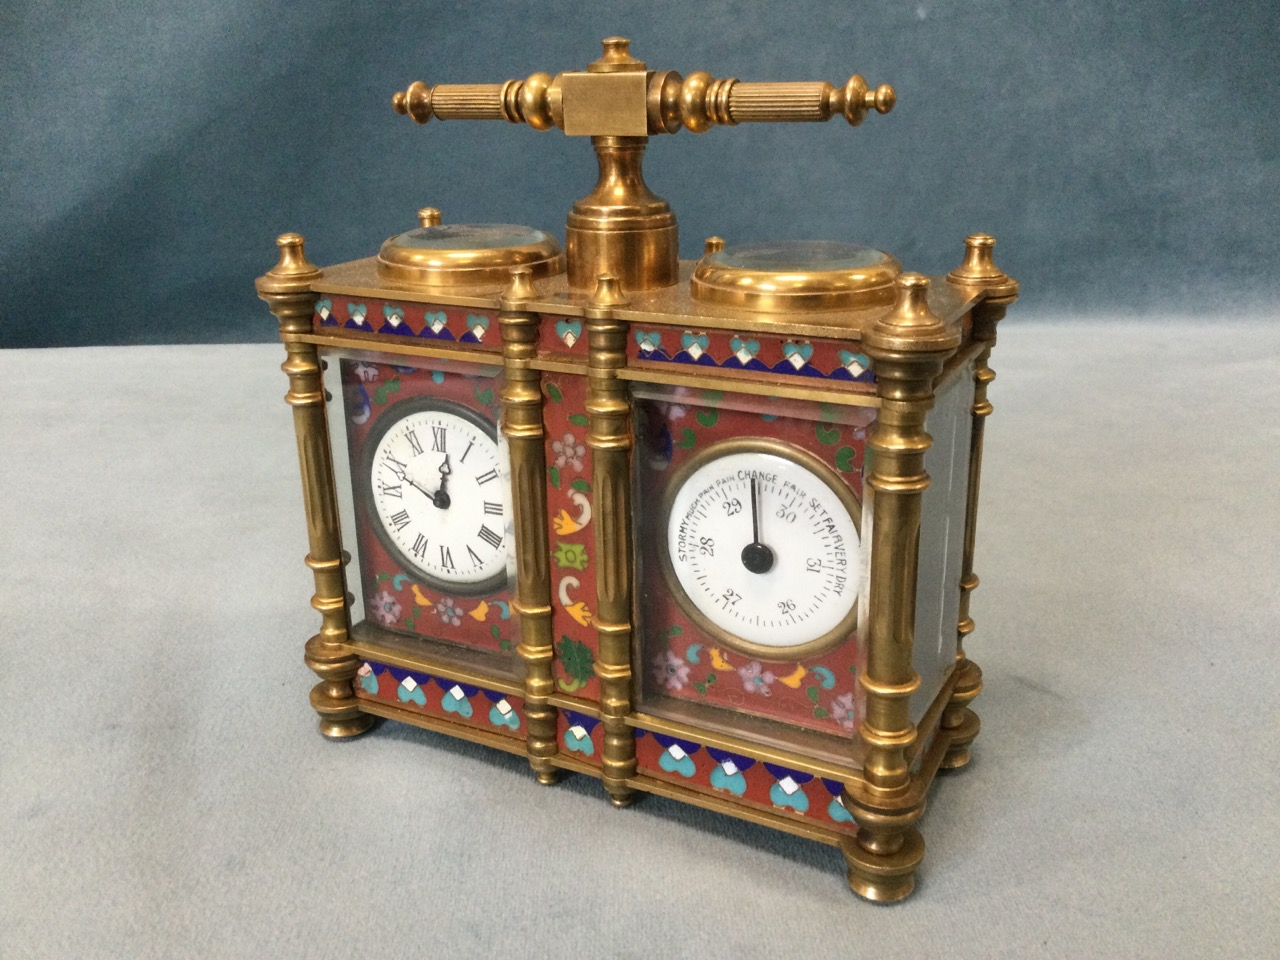 A French Edwardian enamelled brass desk-top clock barometer, the twin instruments with enamelled - Image 3 of 3